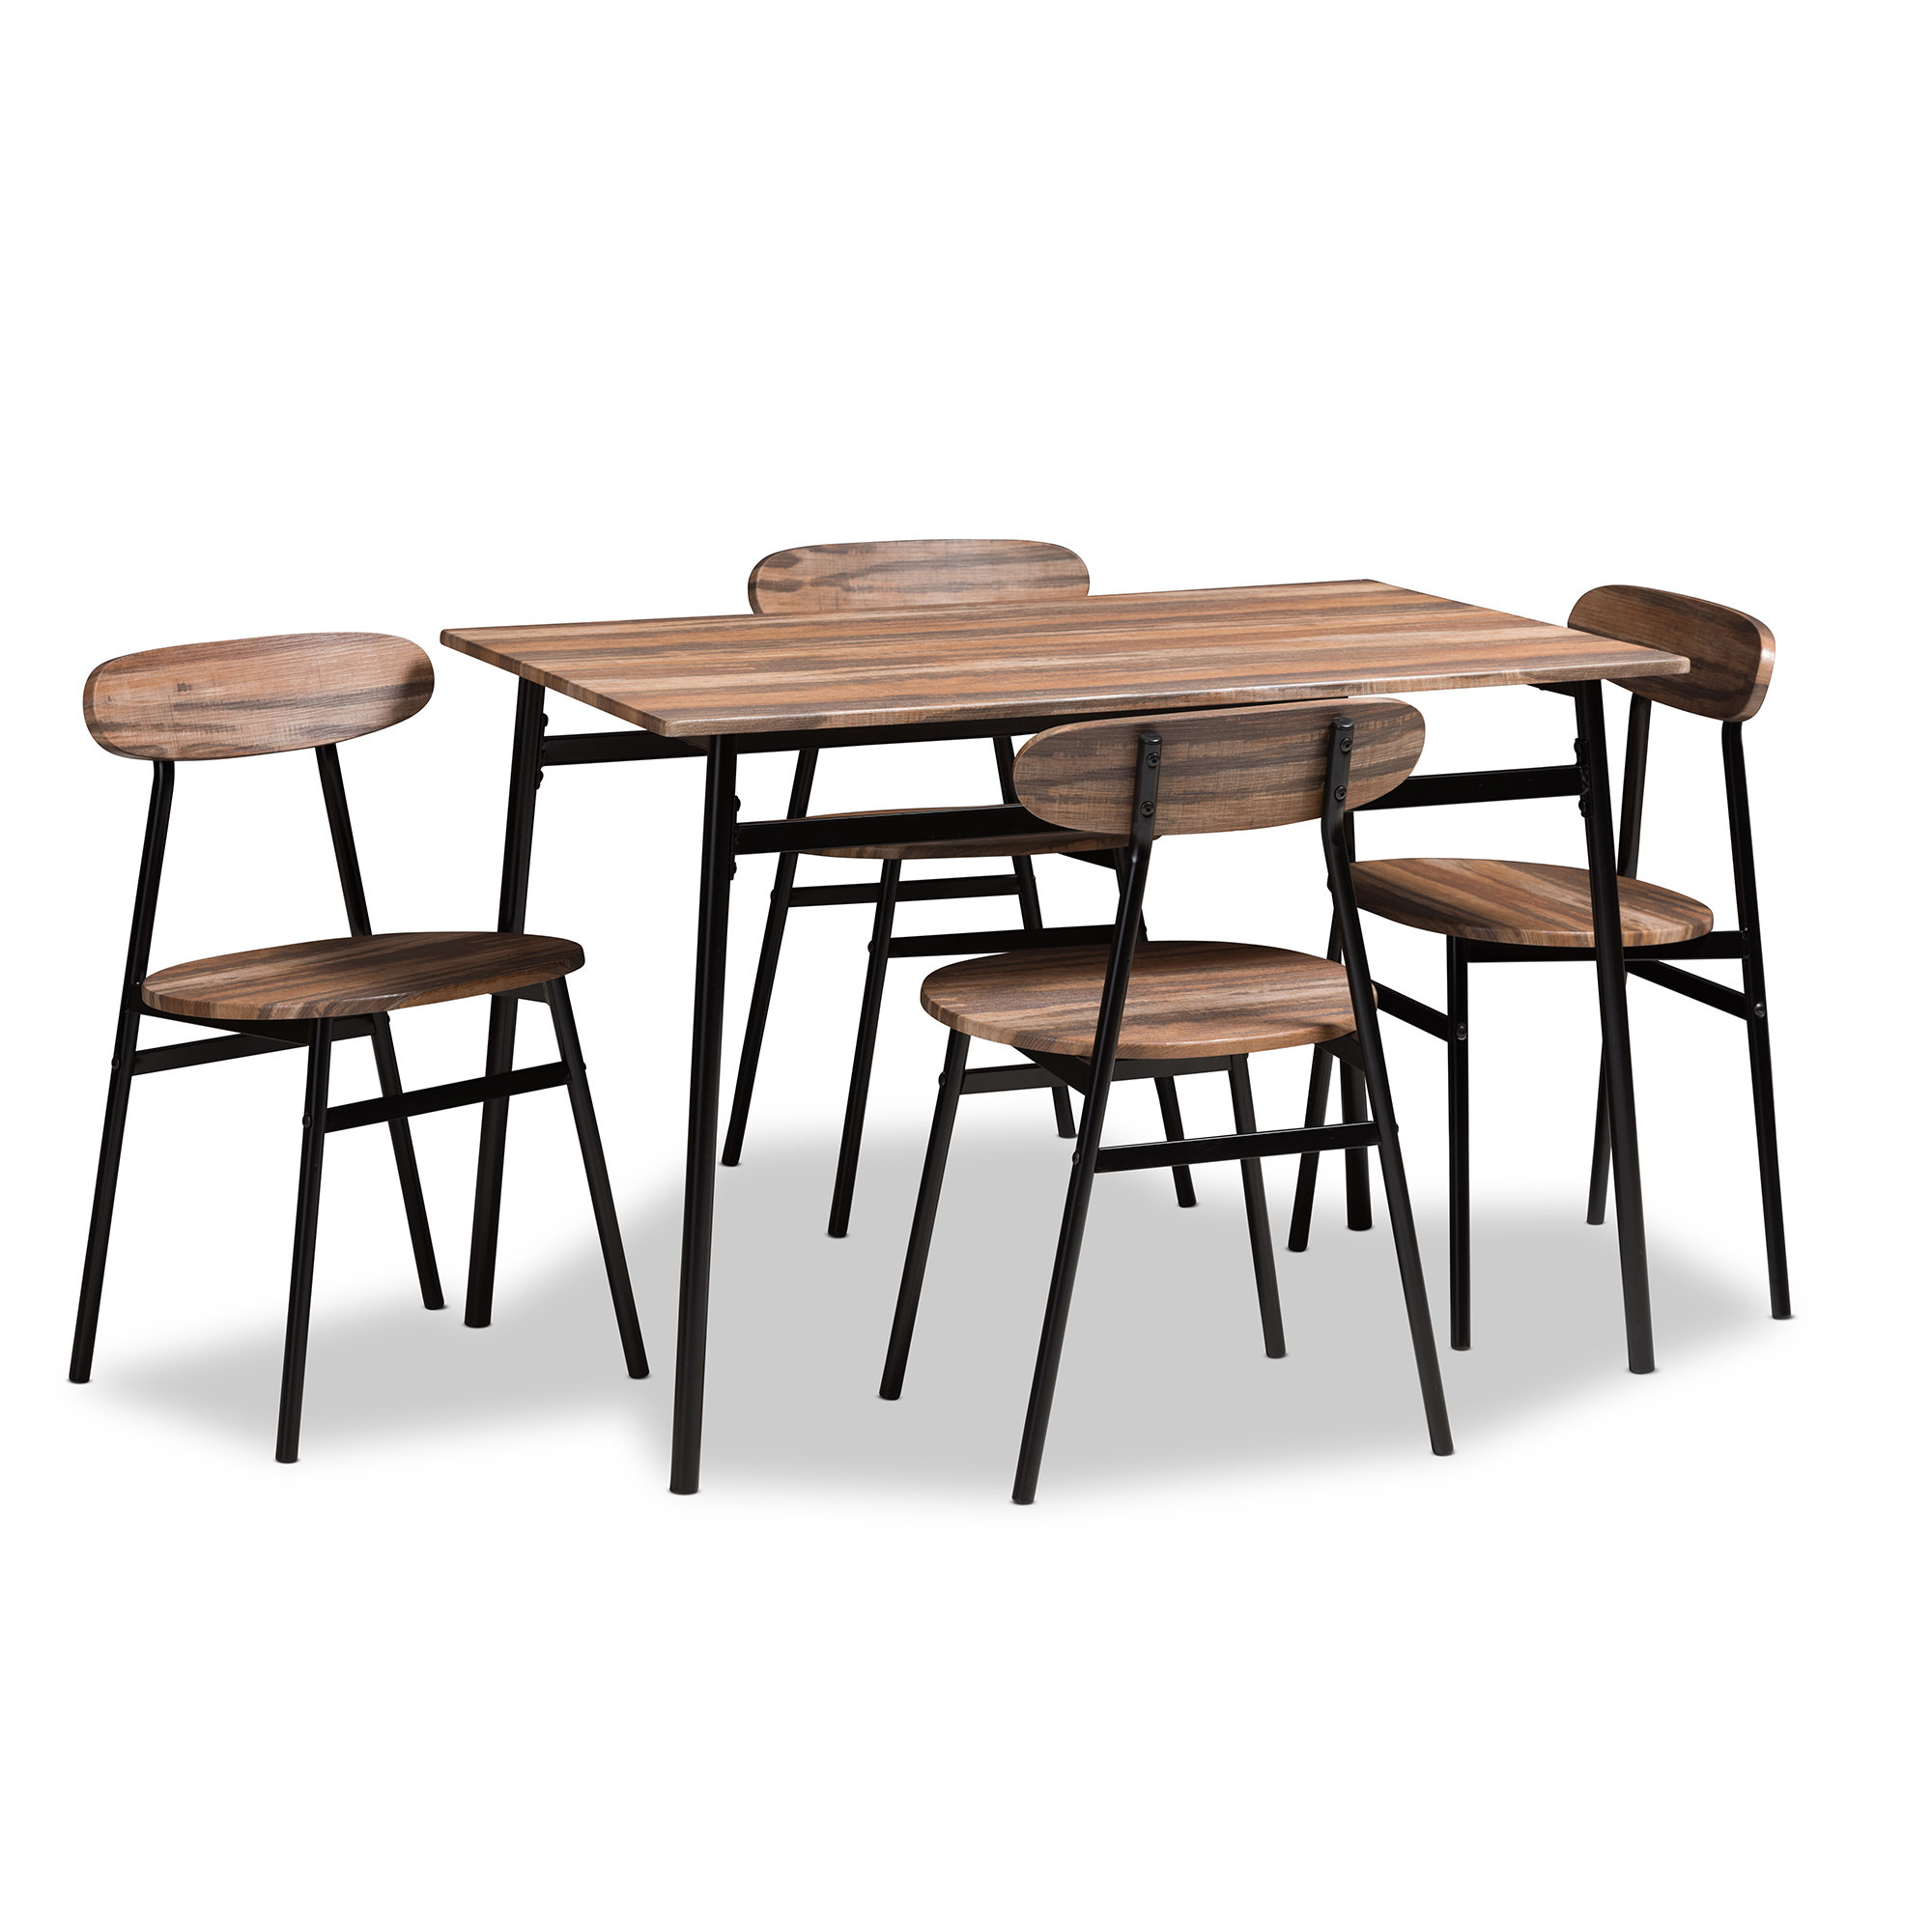 Wayfair With Regard To Well Known Shepparton Vintage 3 Piece Dining Sets (View 8 of 25)